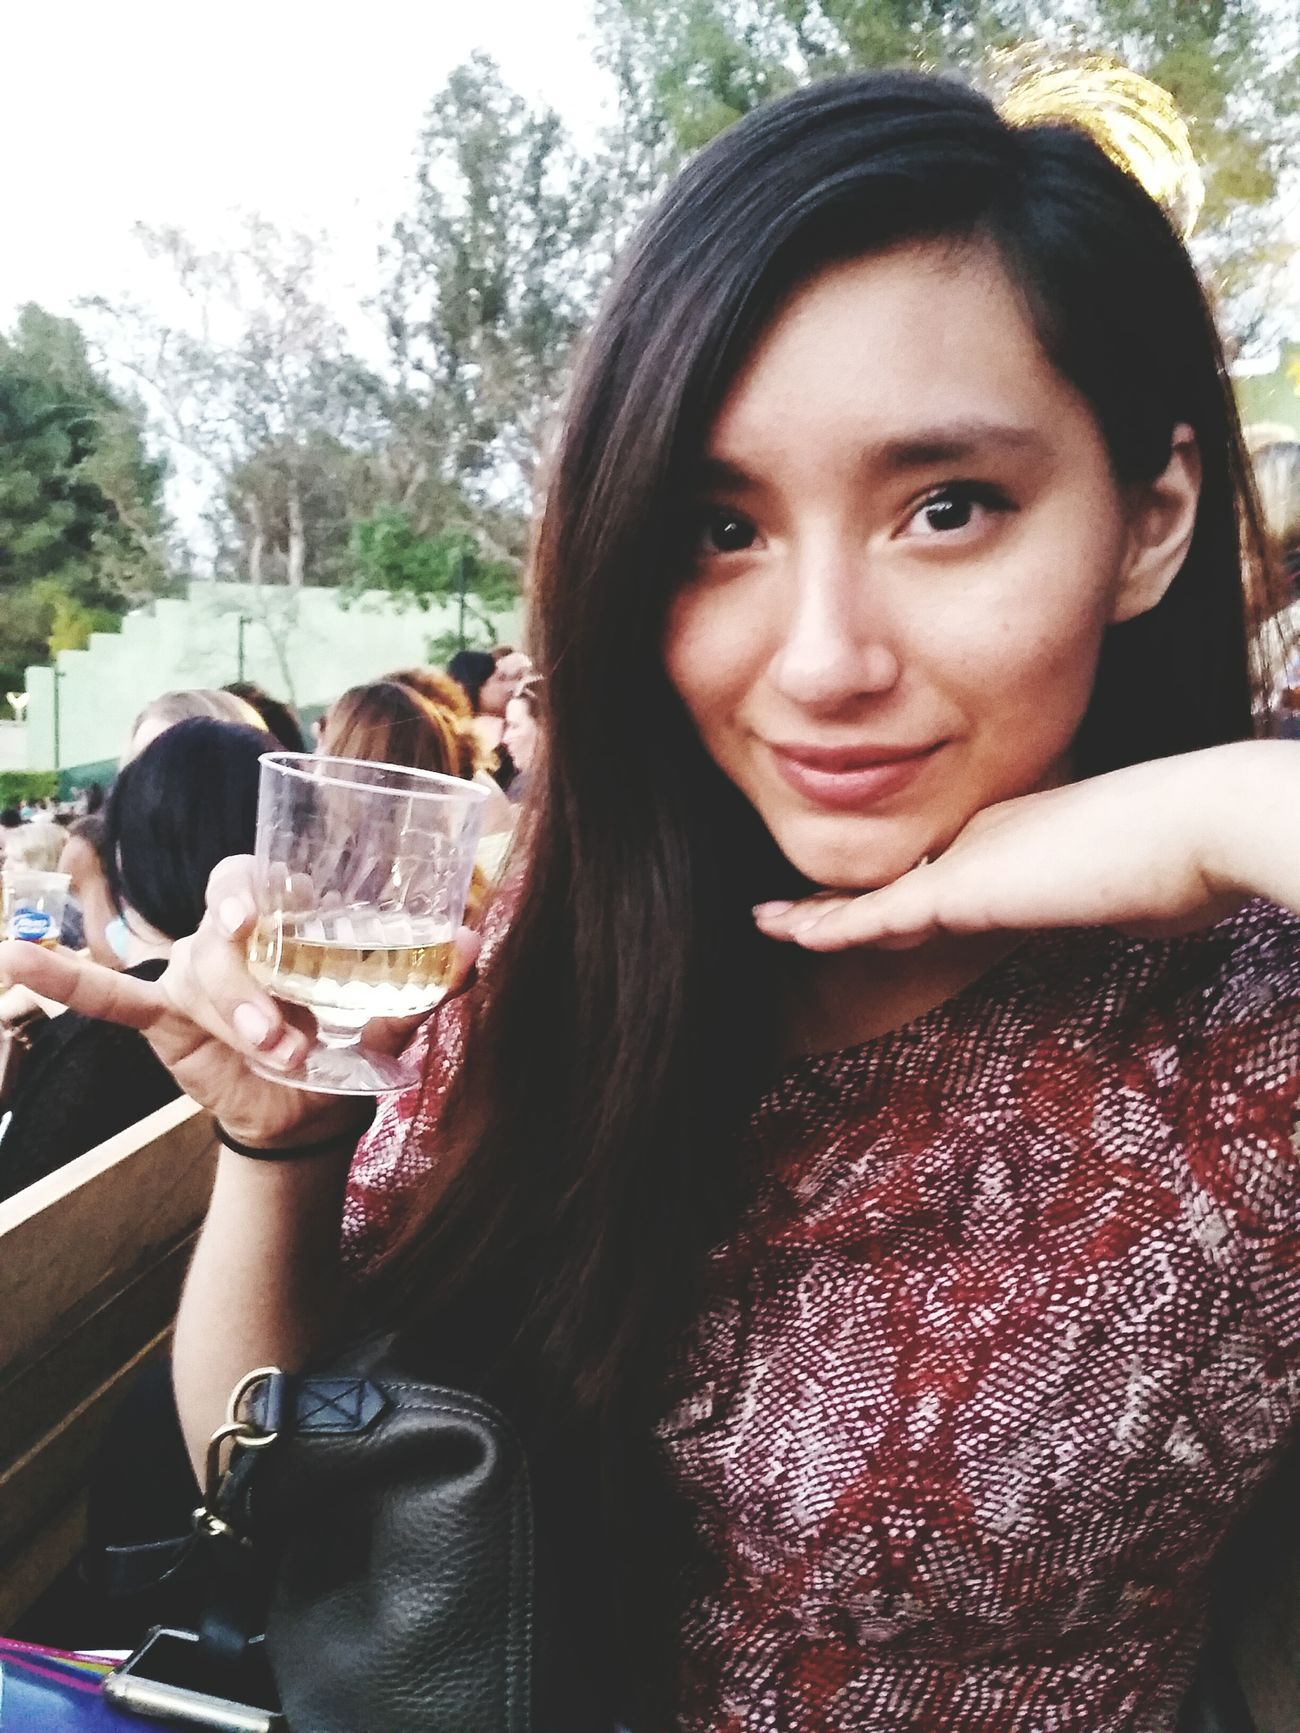 I have a beautiful best friend, inside and out, who drinks her wine super fancy. What you didn't see is her drinking that wine with a straw. Taking Photos Hanging Out Starting A Trip Hollywood Bowl Los Ángeles Family People